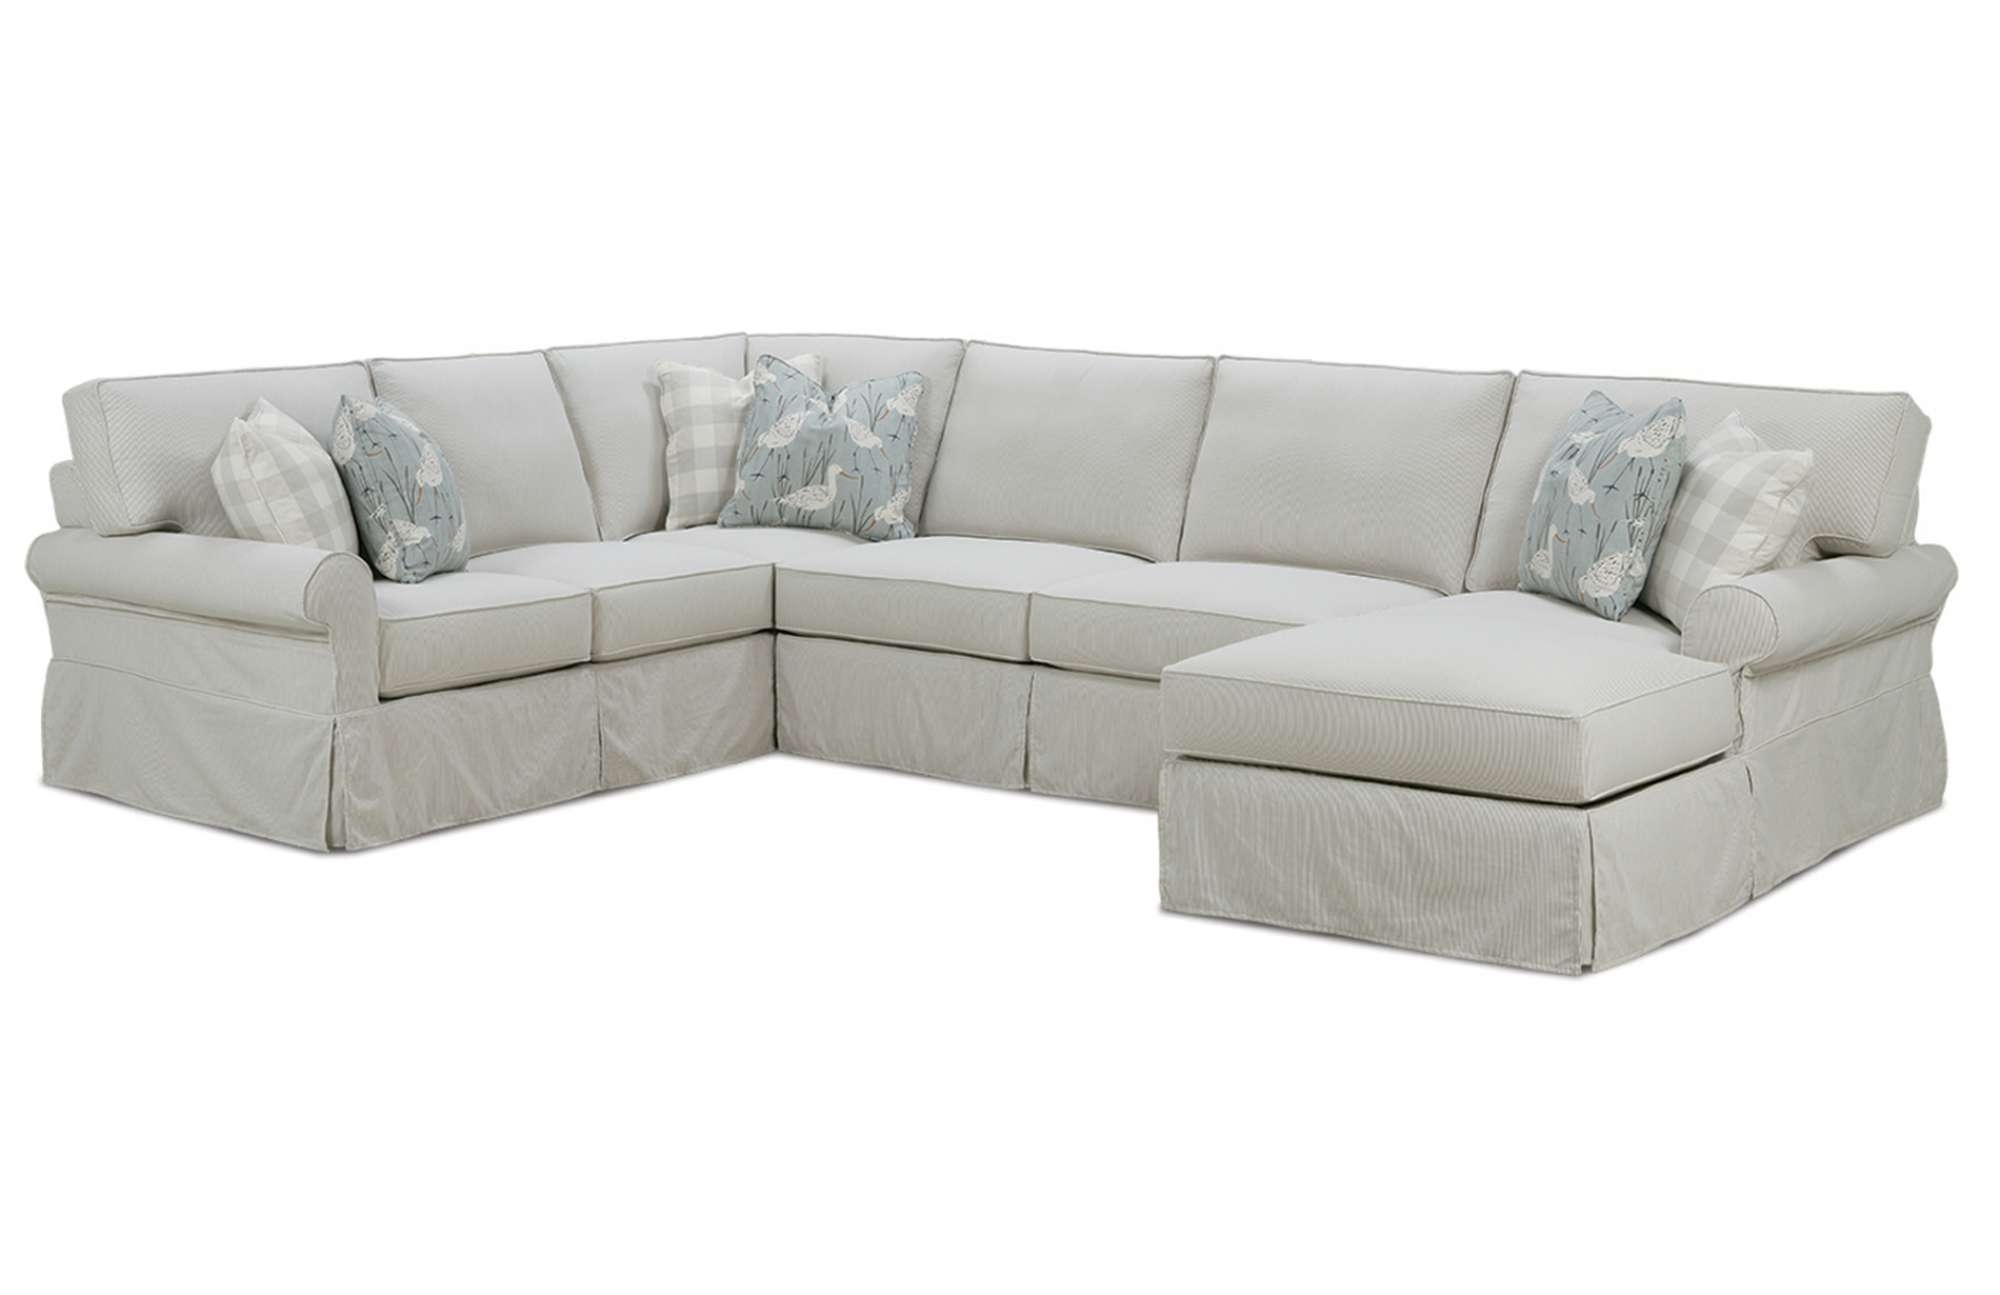 Easton Slipcover Sectionalrowe Furniture Intended For Furniture Row Sectional Sofas (Photo 4 of 10)